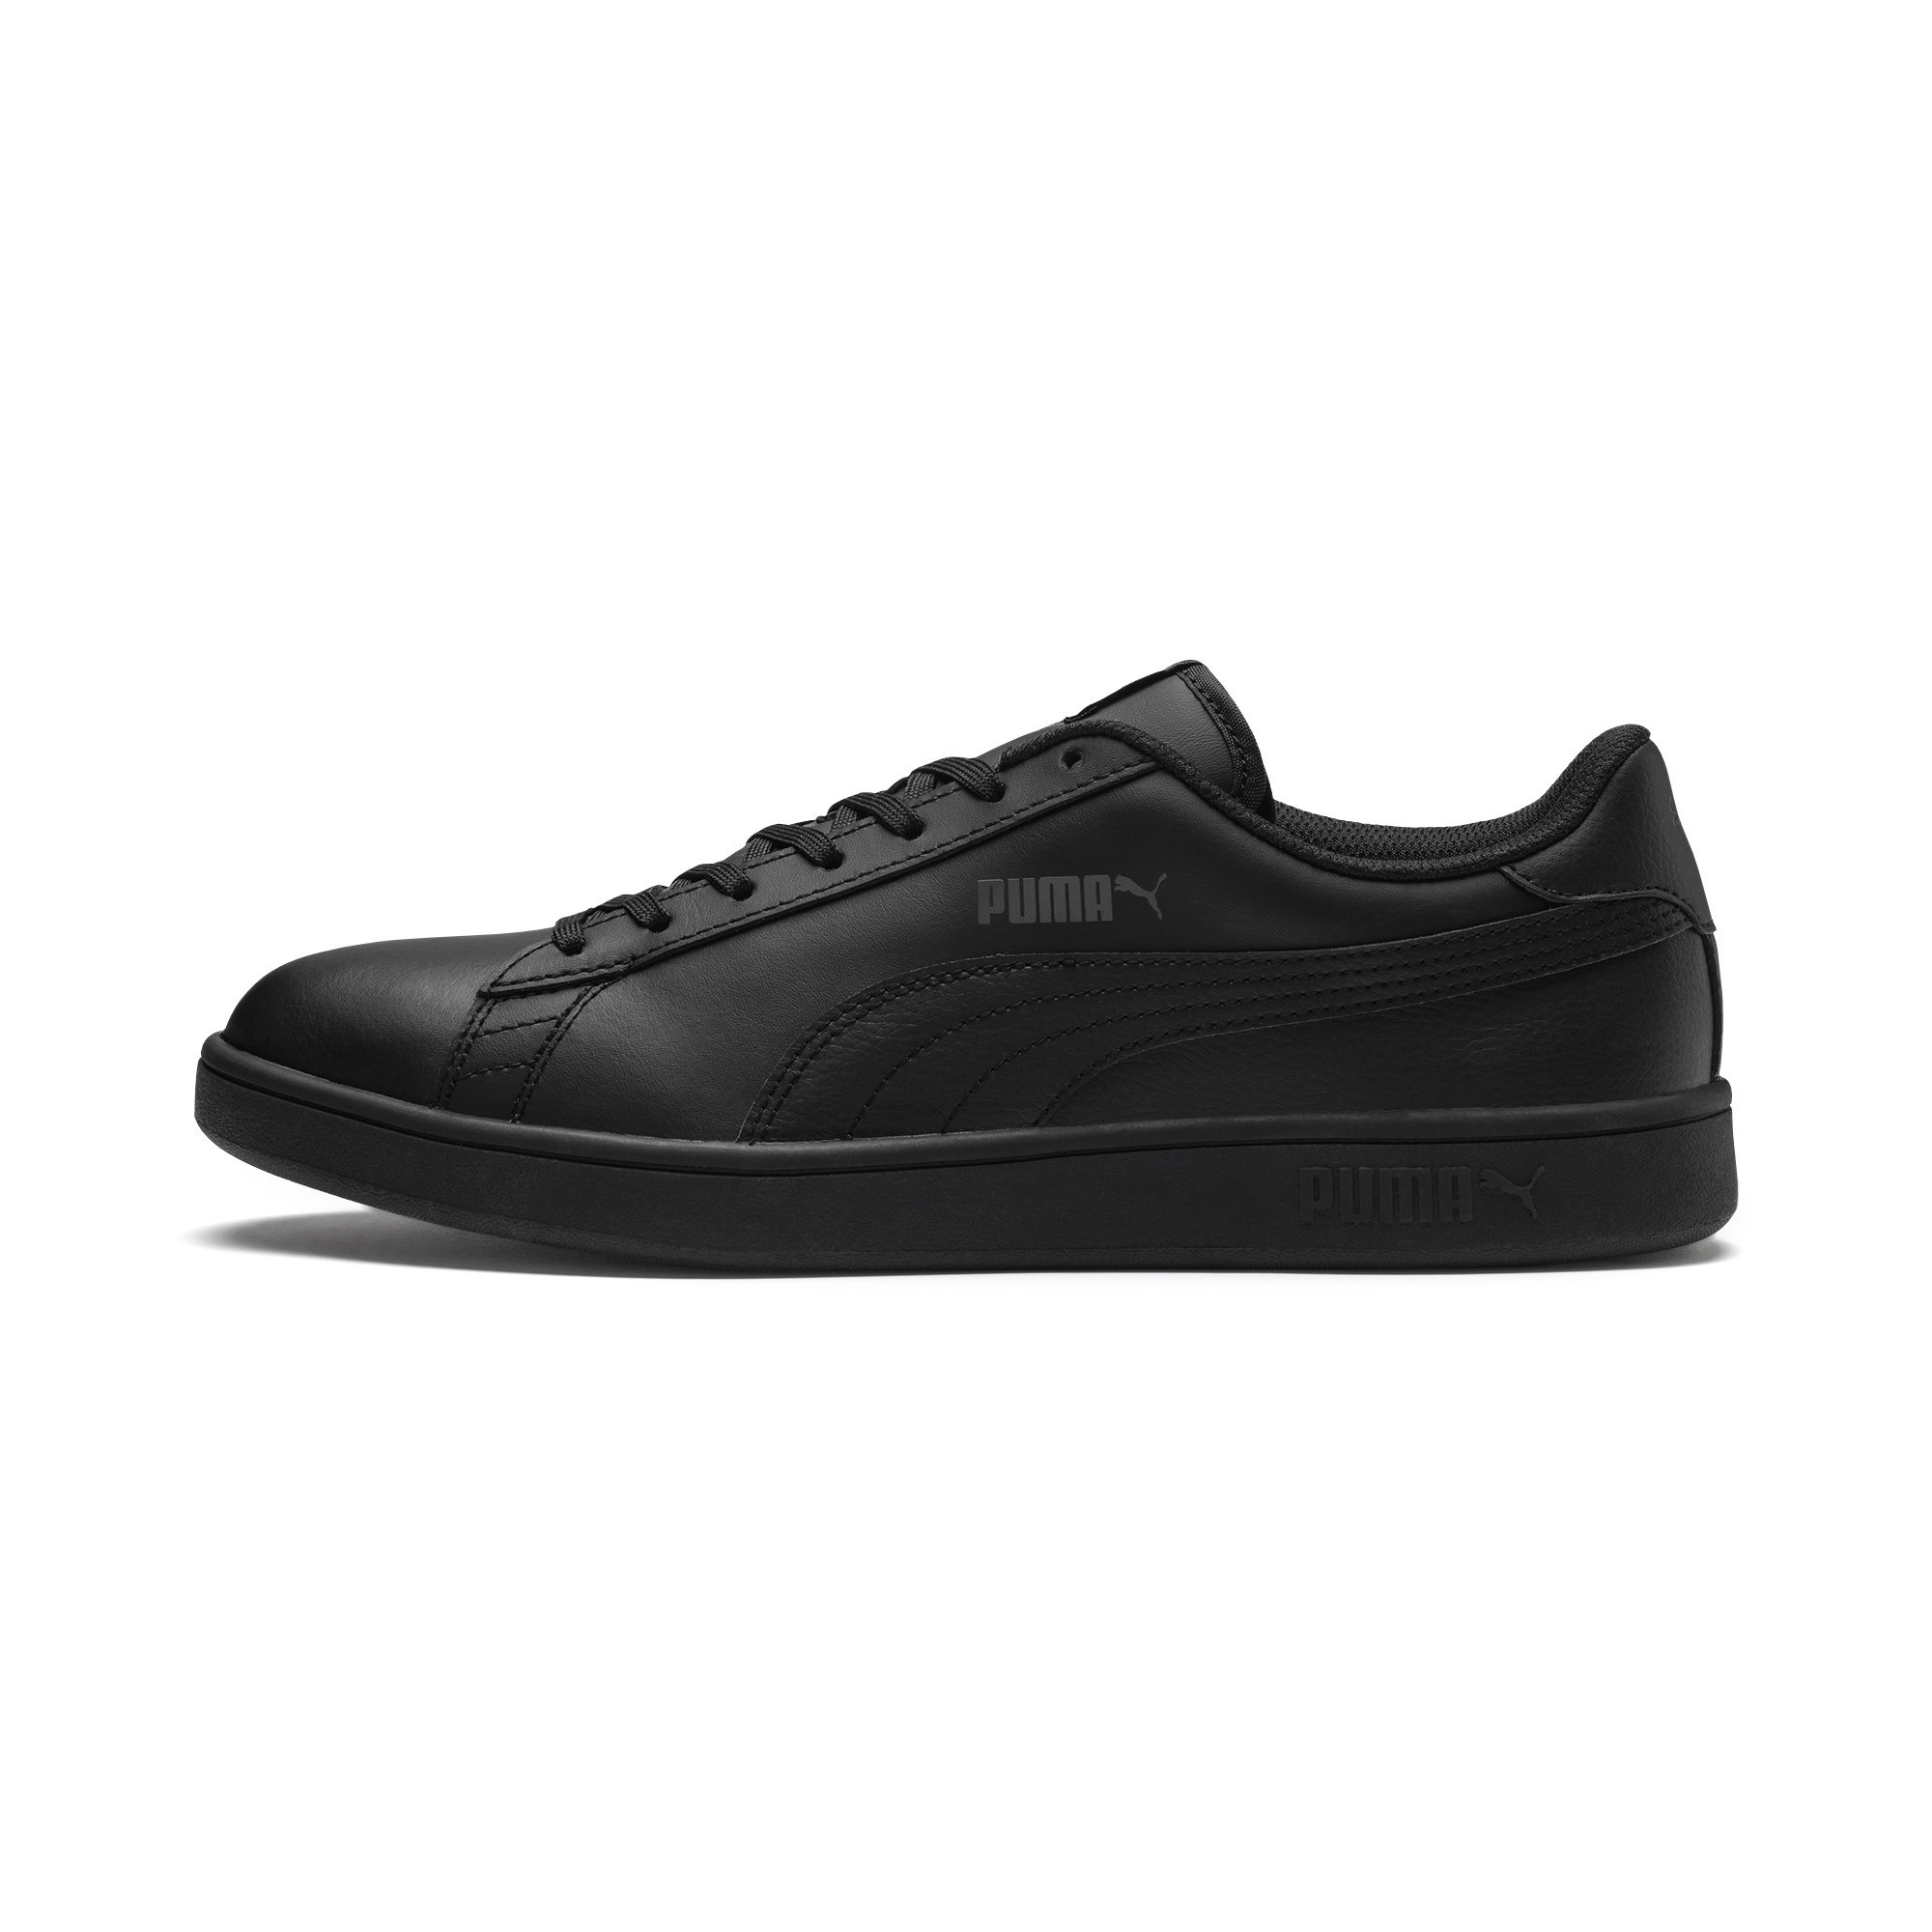 PUMA-PUMA-Smash-v2-Men-039-s-Sneakers-Men-Shoe-Basics miniatura 23